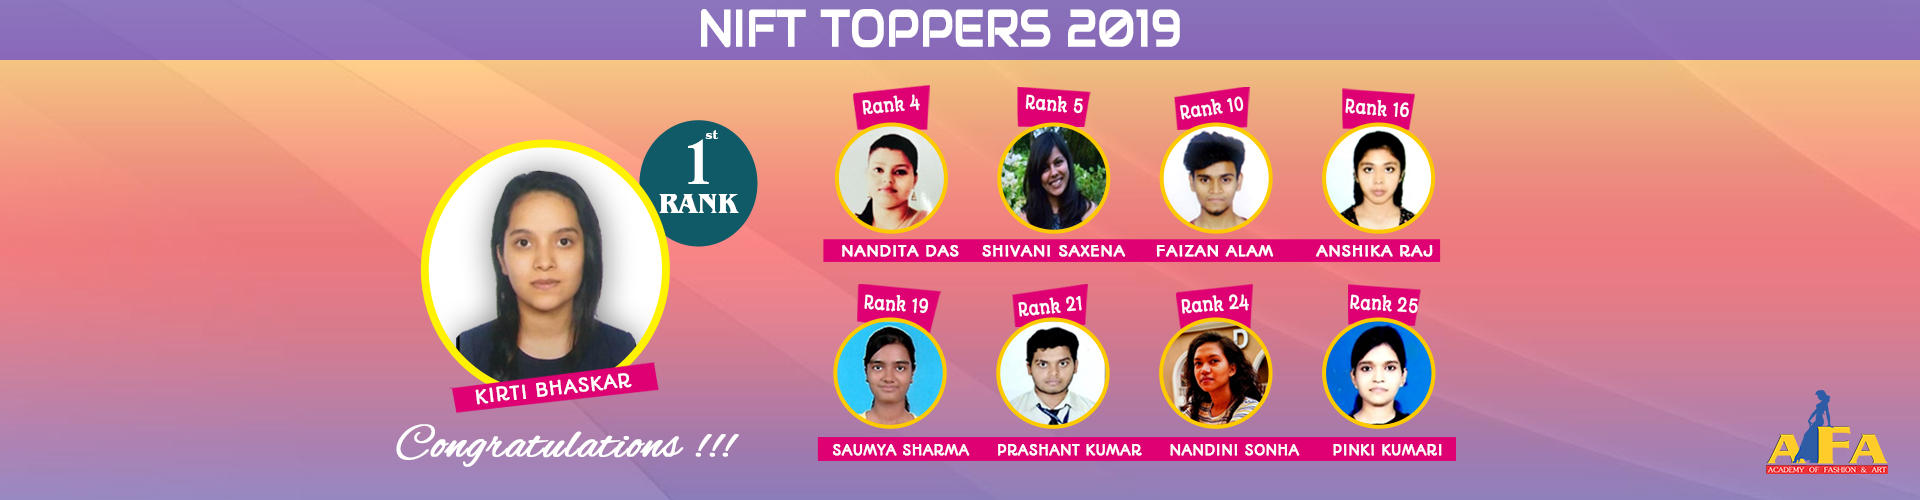 nift toppers 2019